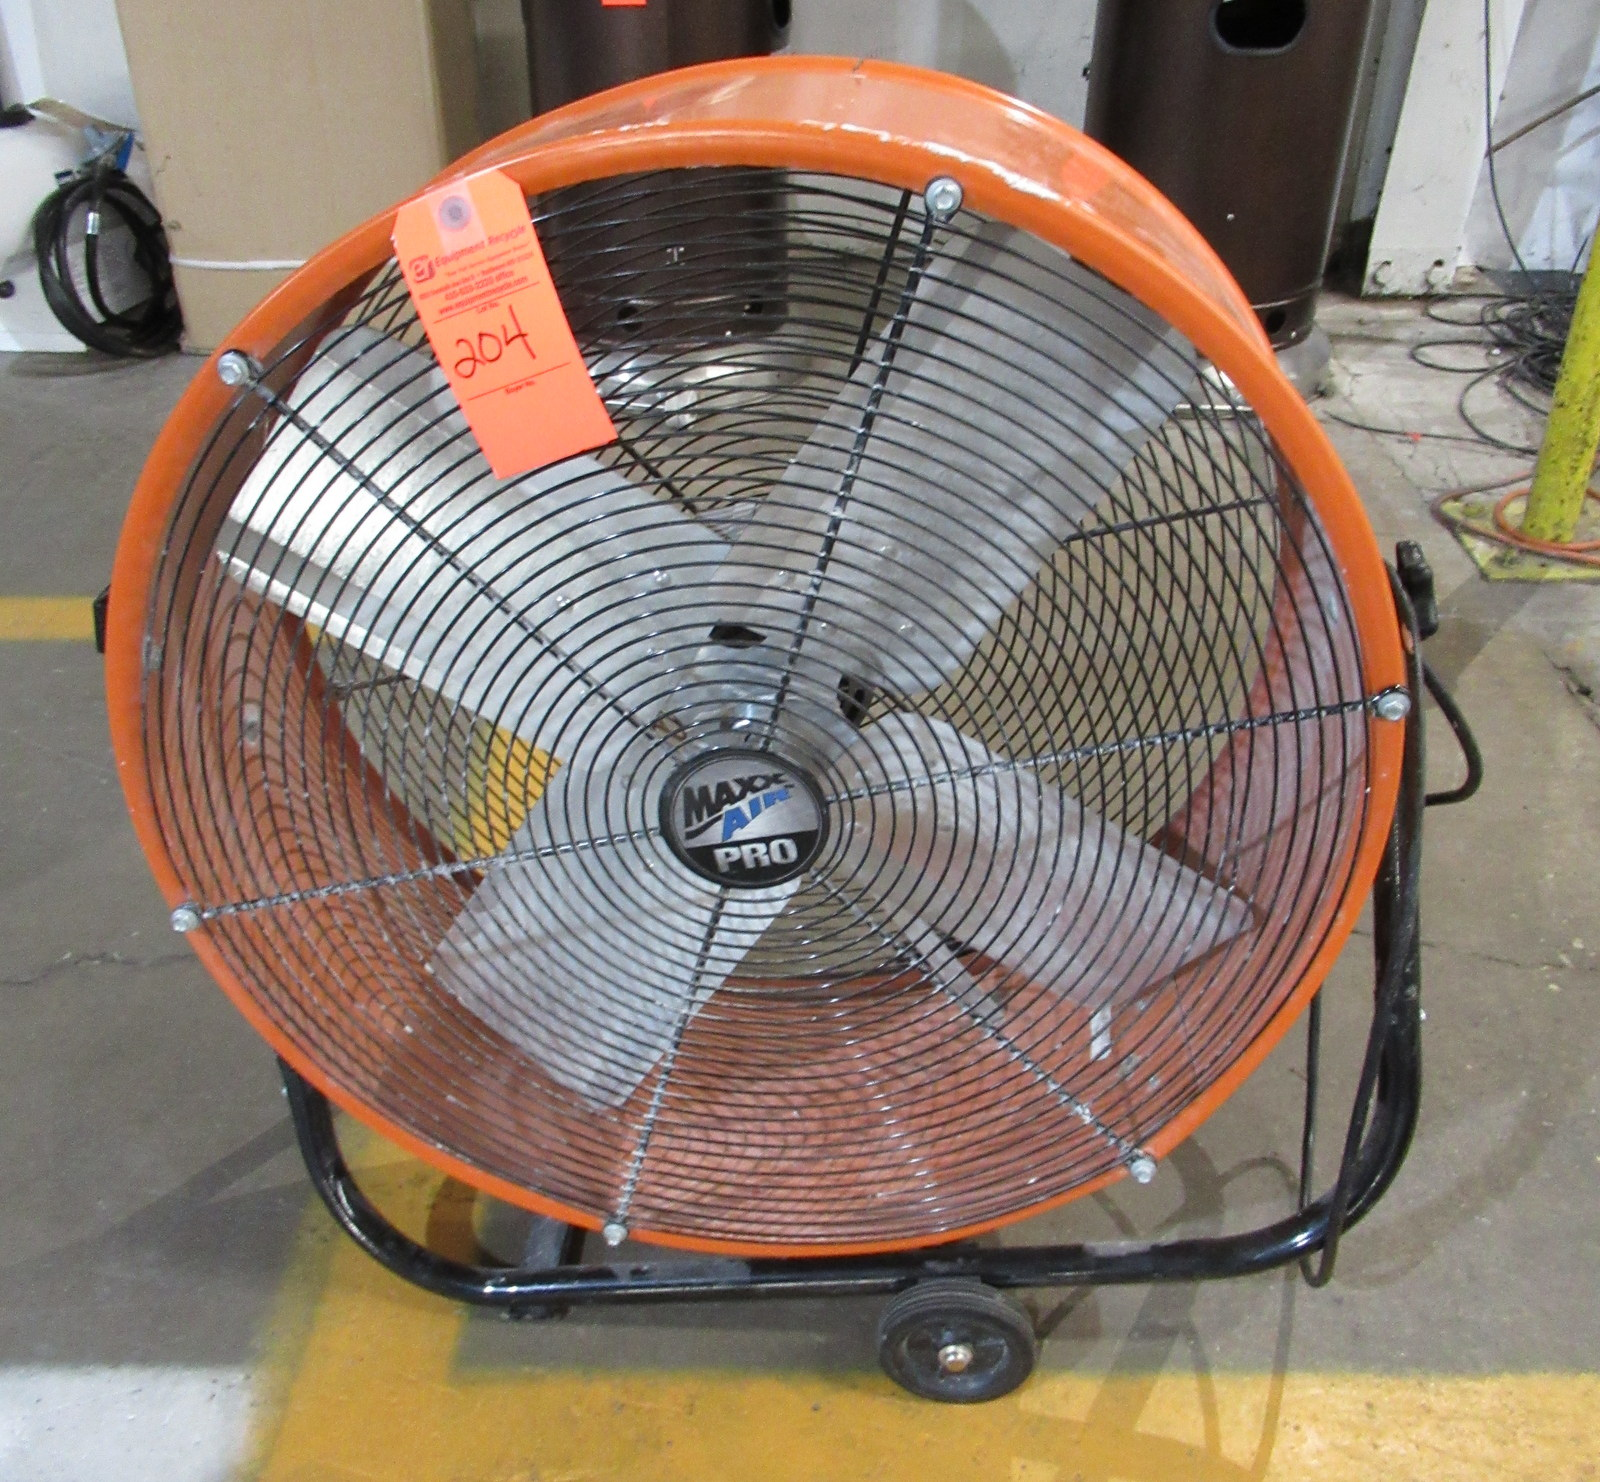 Lot 204 - Maxx AirPro BF24TFORGPRO Fan